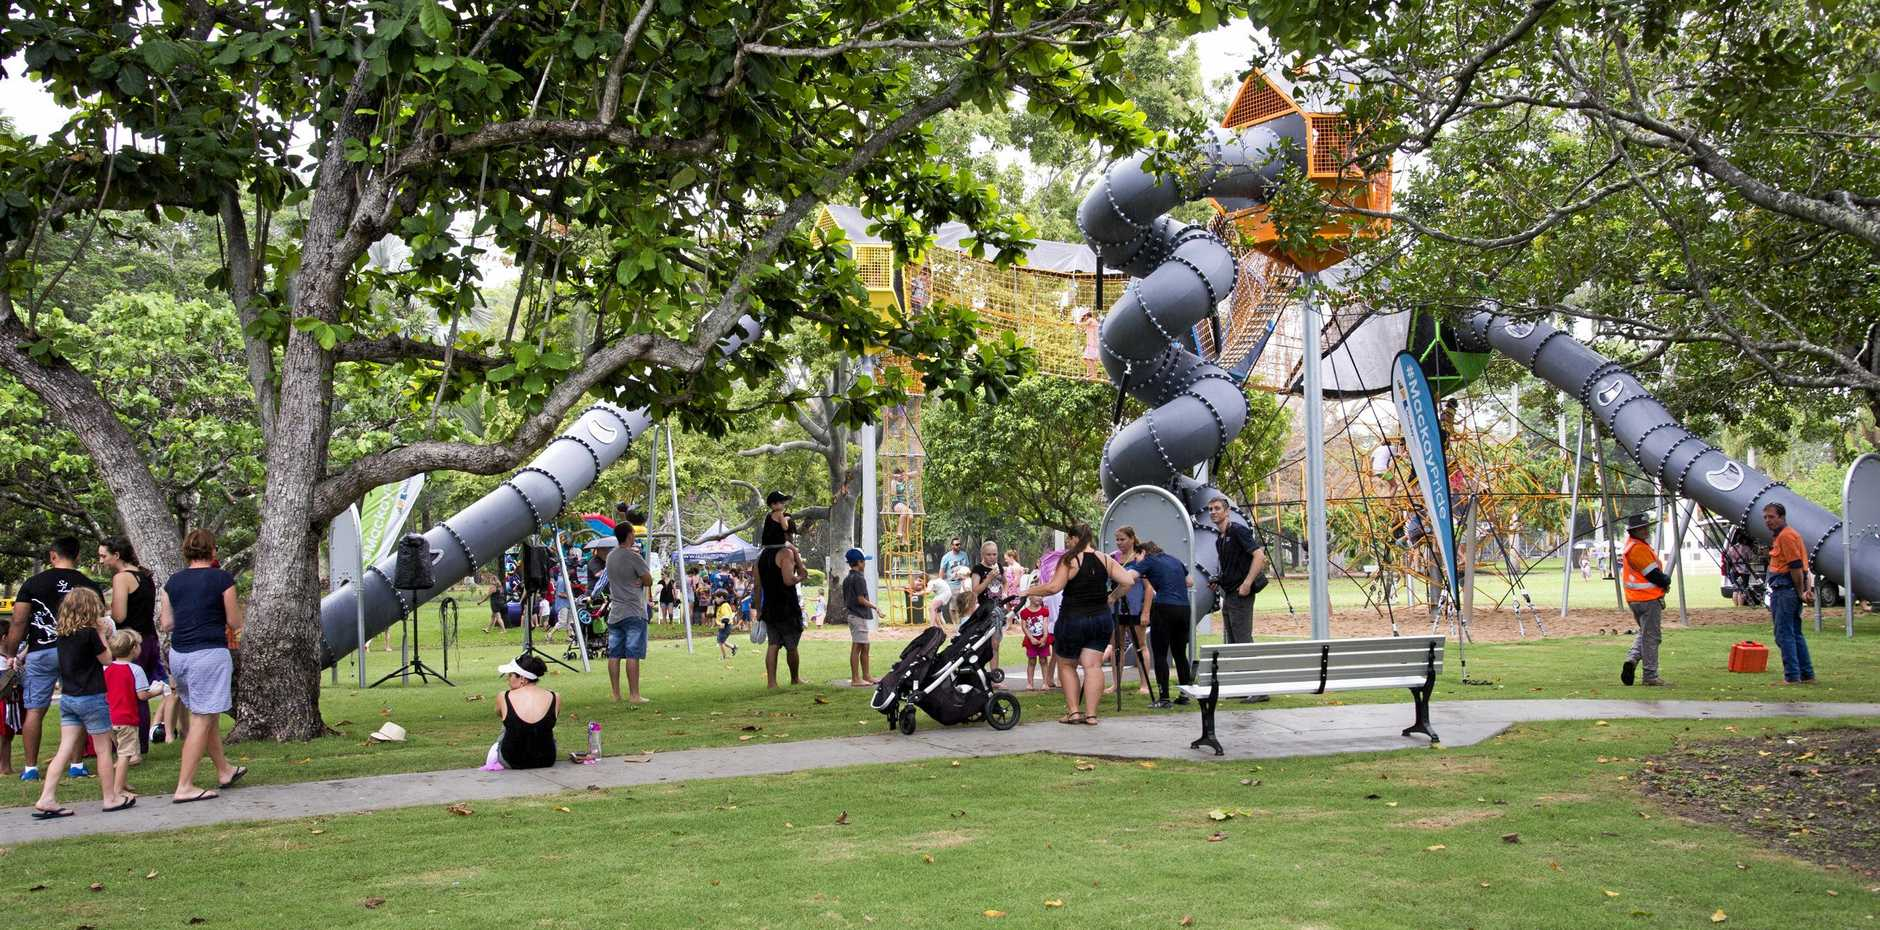 The adventure playground at Queens Park is considered to be on a par with that of Brisbane's Southbank Parkland.